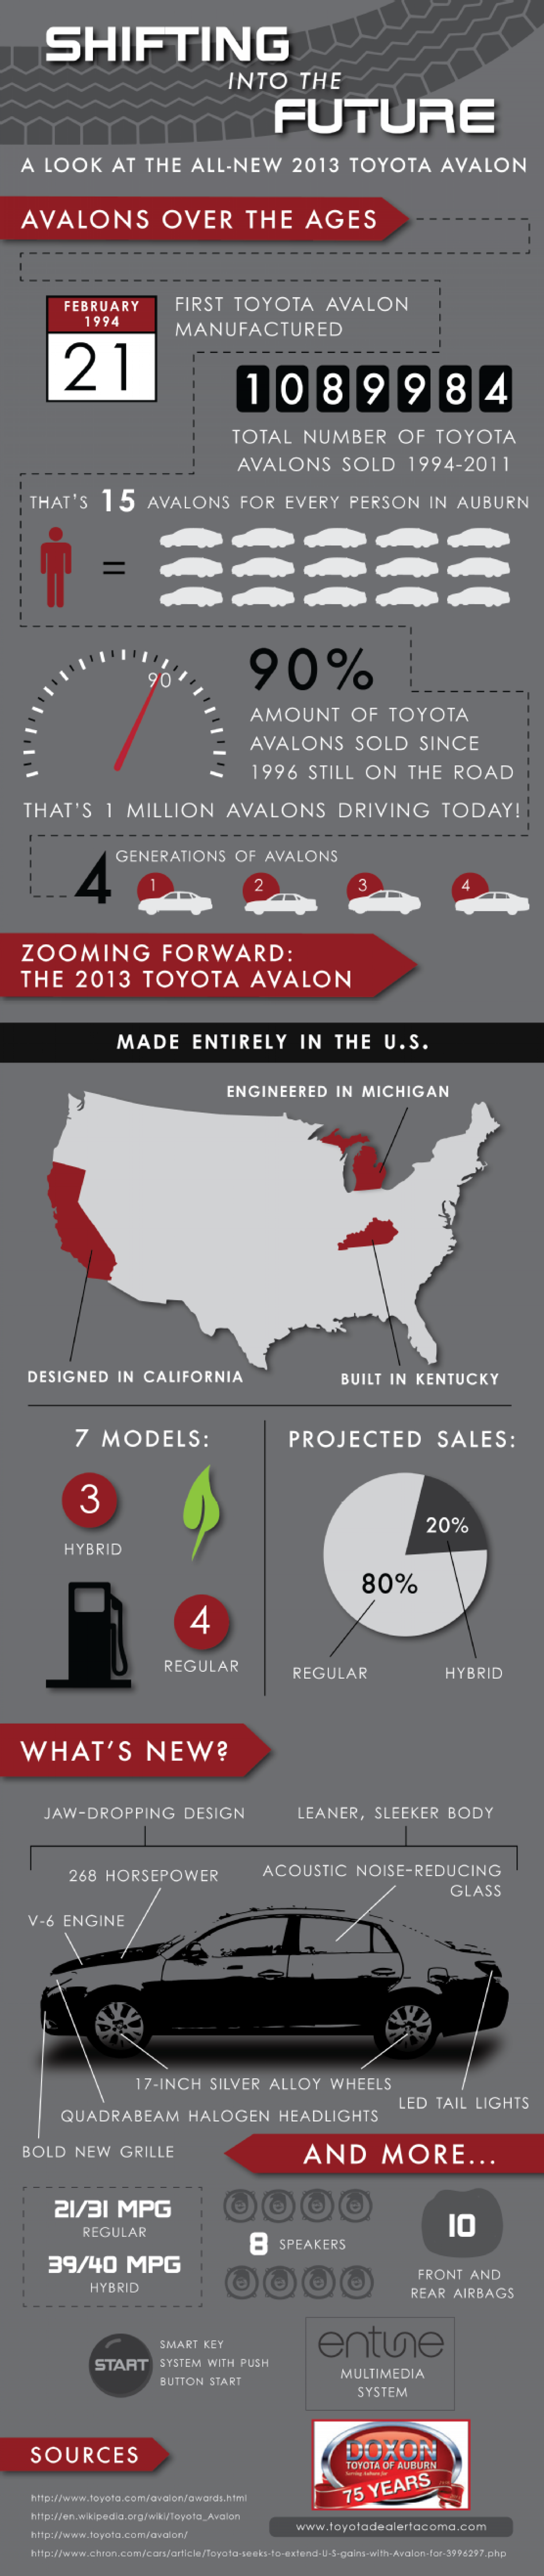 Shifting into the Future: A Look at the All-New 2013 Toyota Avalon Infographic